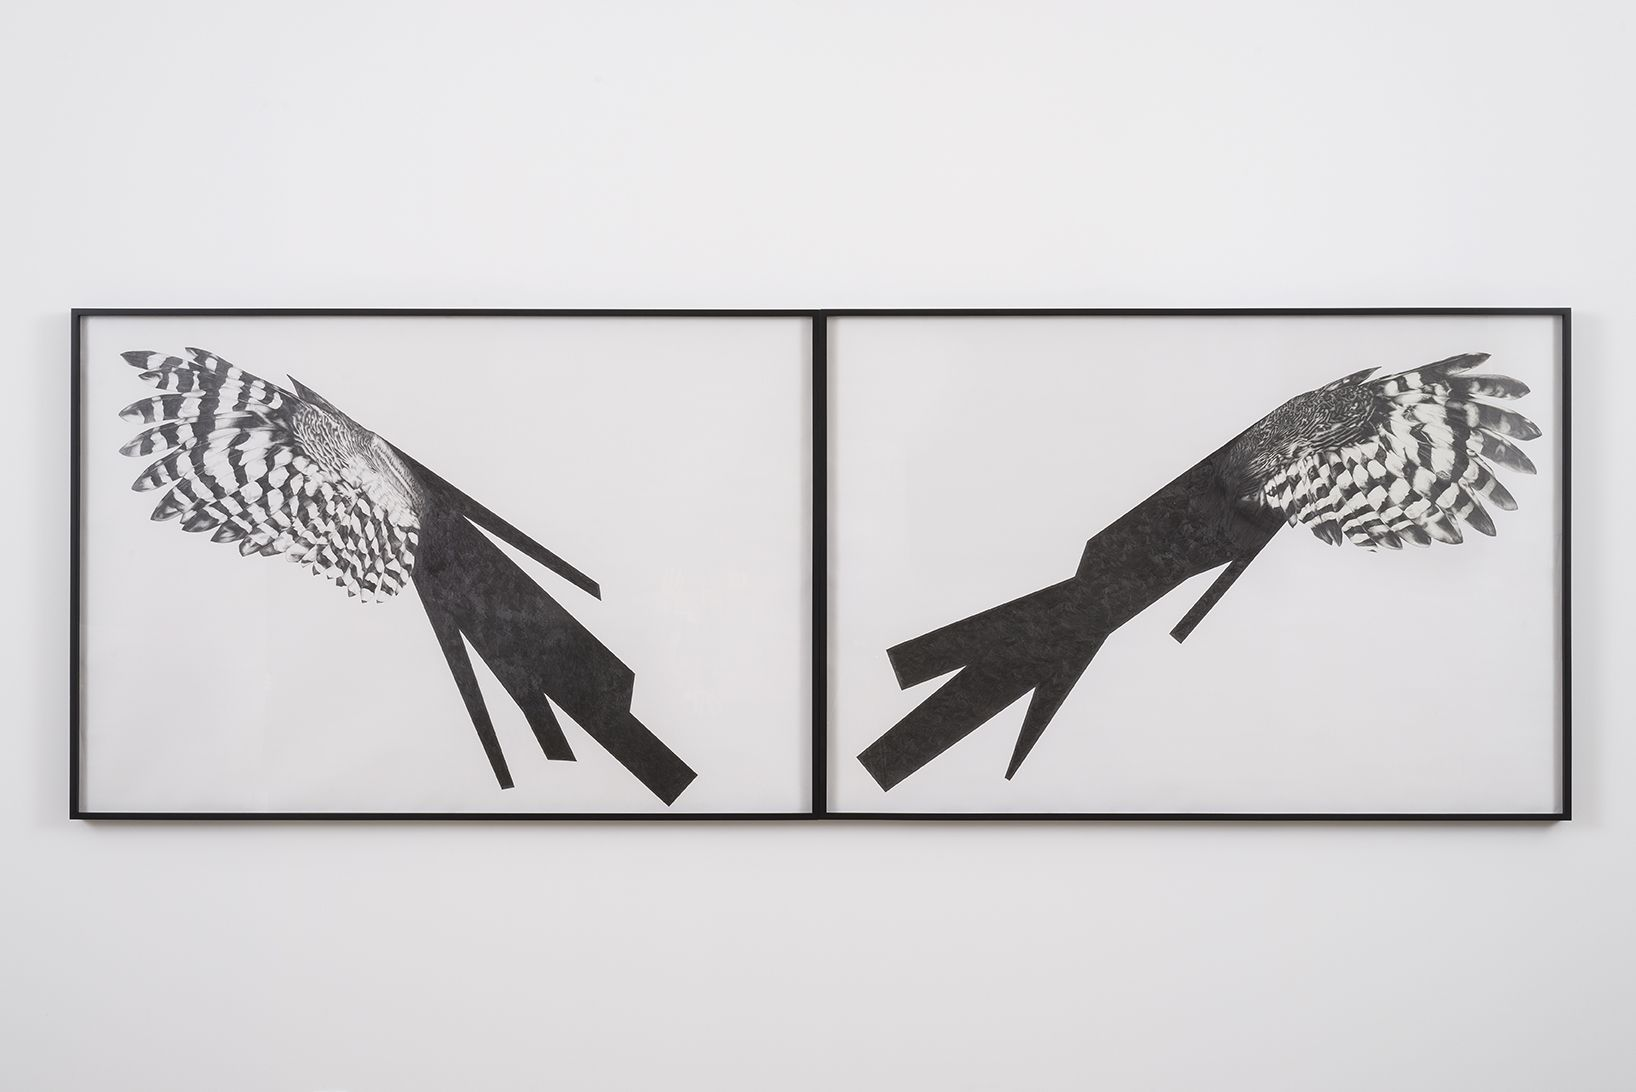 Yuval Pudik, Mother's Only Son: Ambidextrous 1 & 2 , 2013-2015